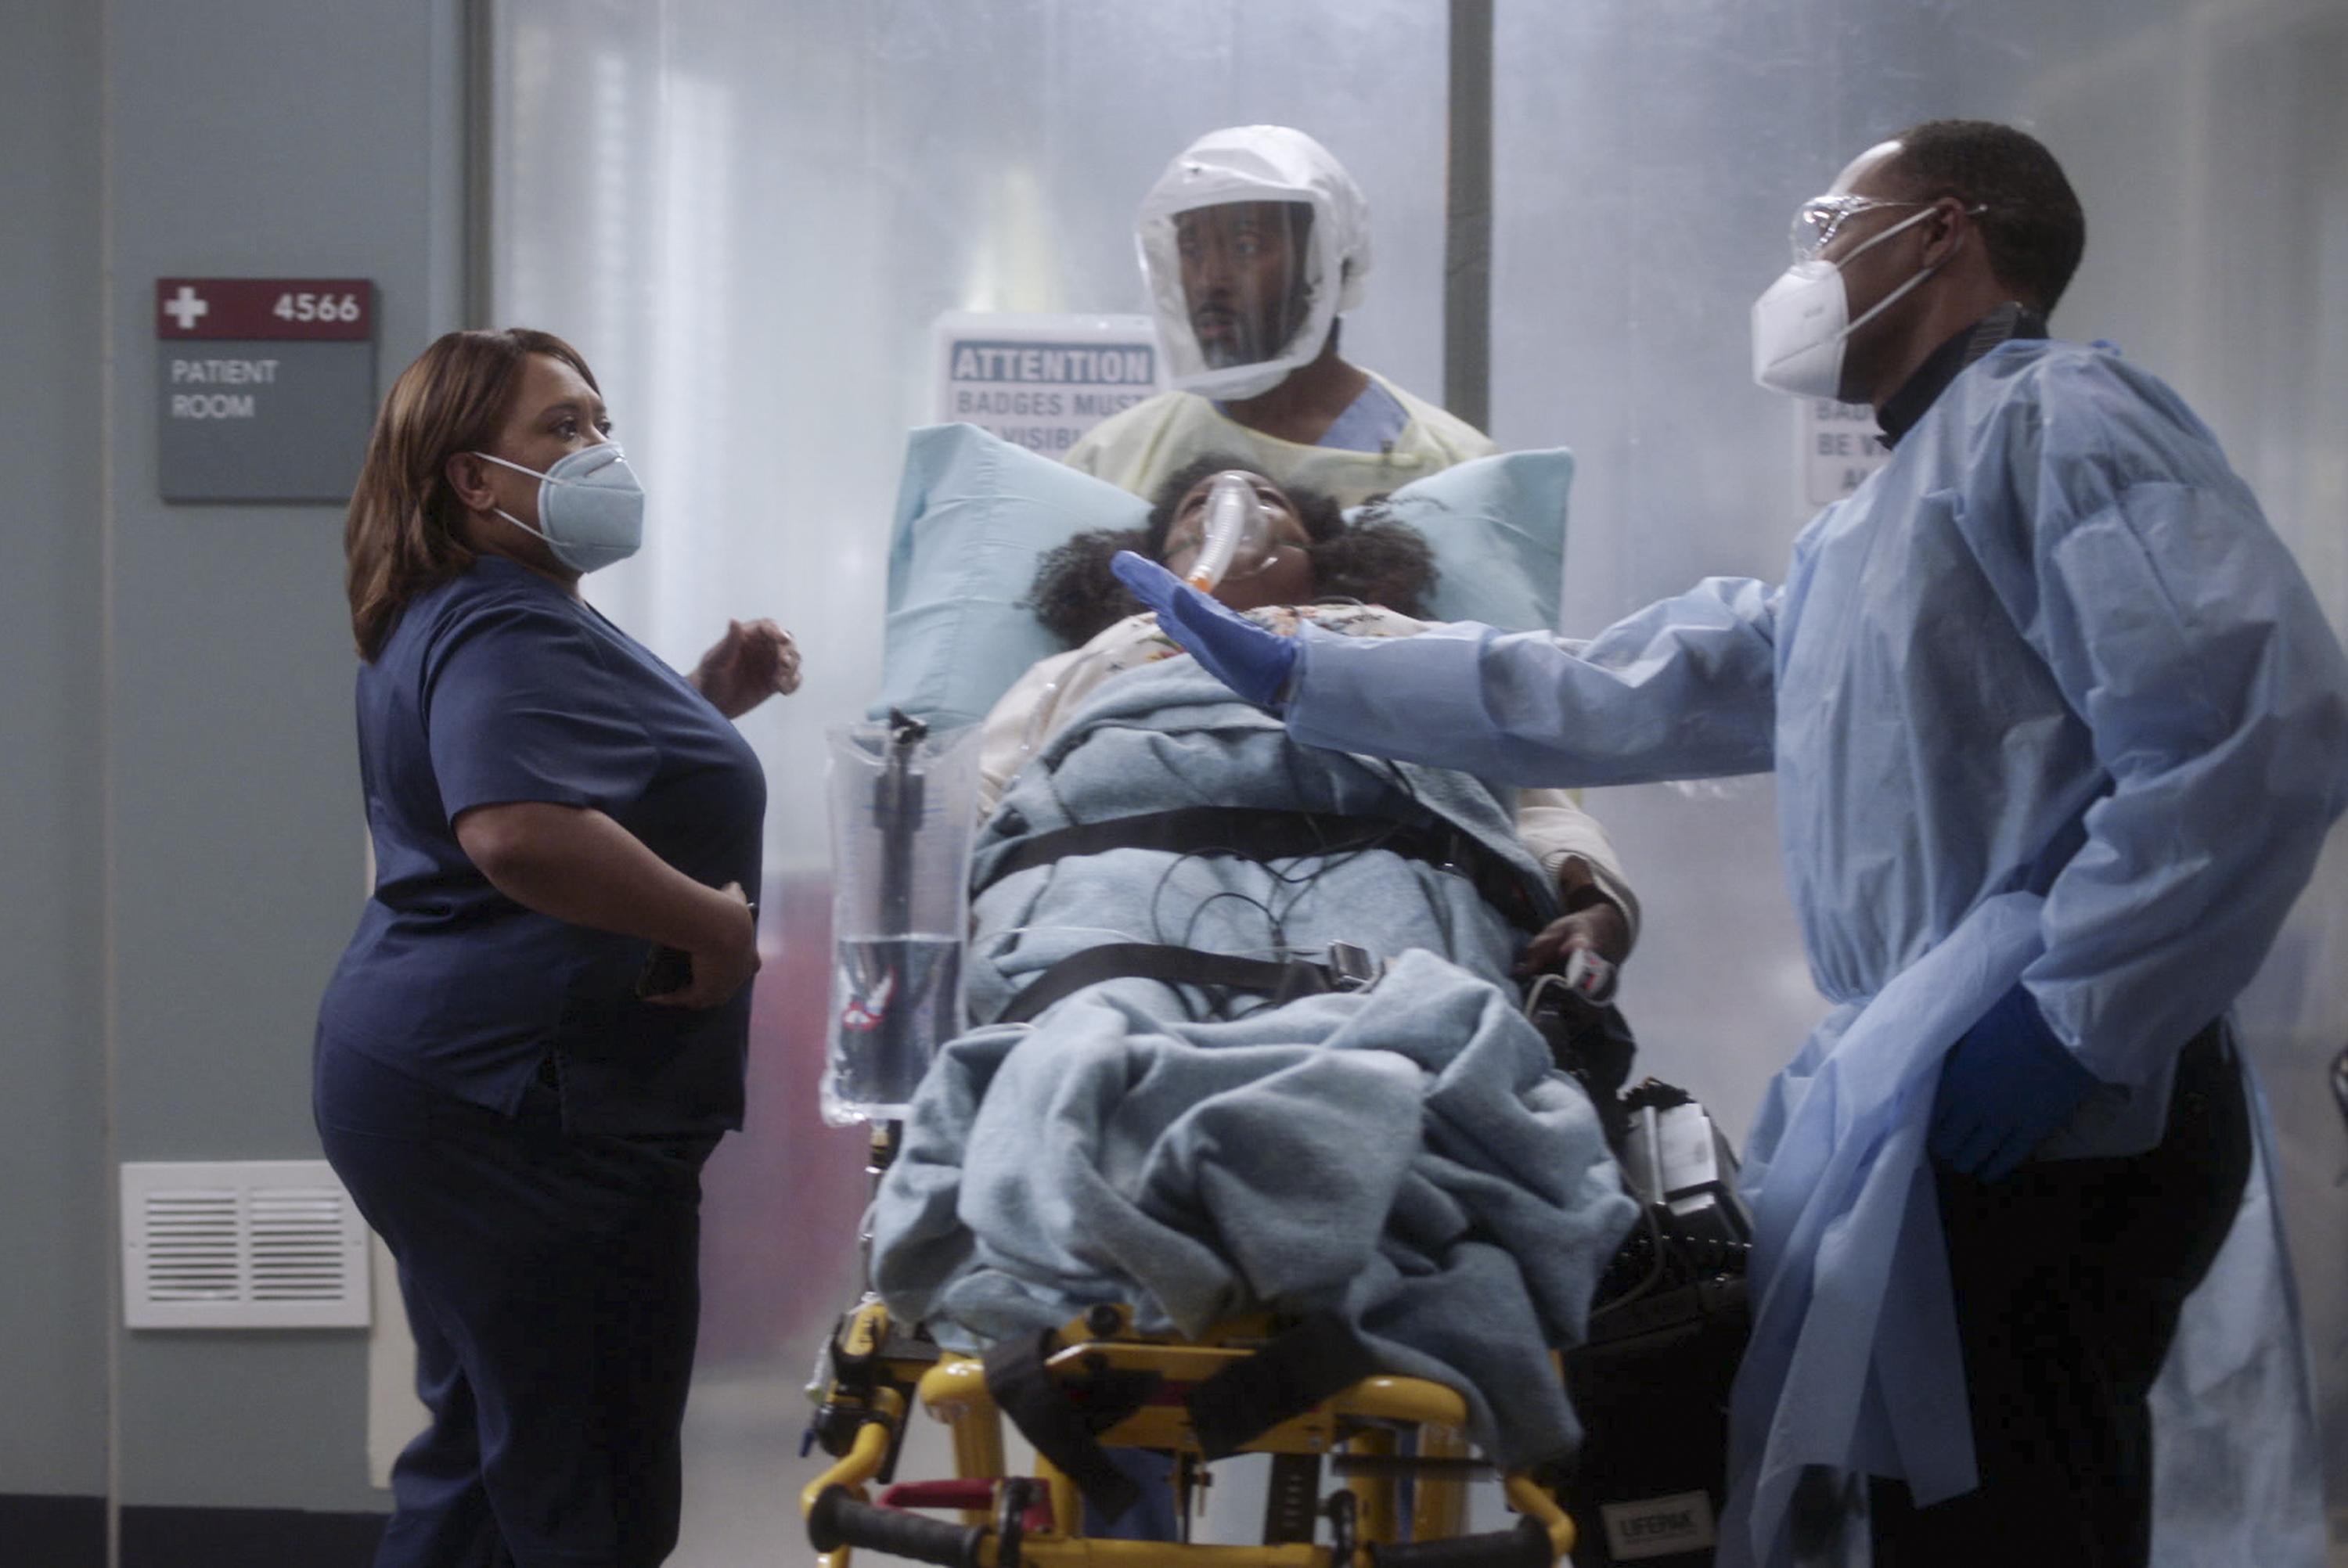 Some TV shows are telling stories about the pandemic. Some viewers wish they wouldn't